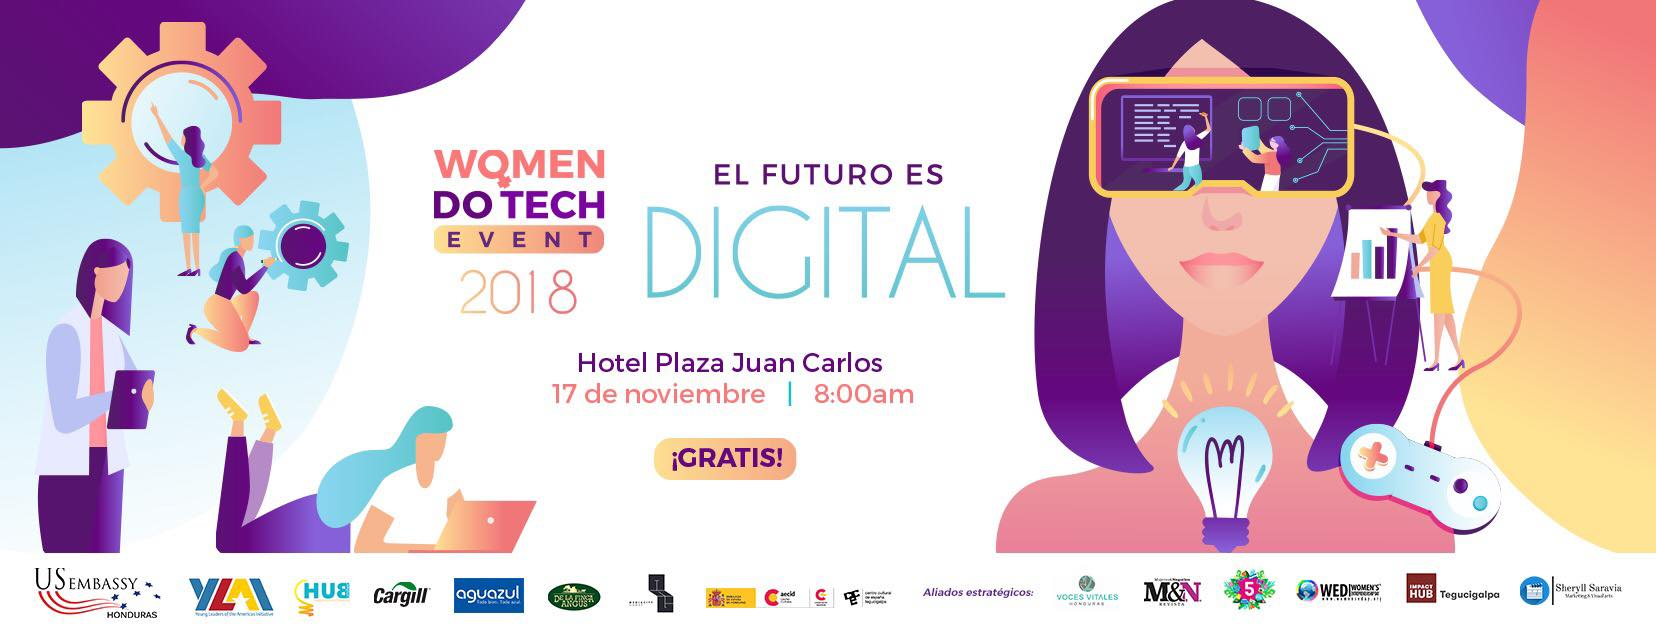 Fuente: Women Do Tech/Facebook